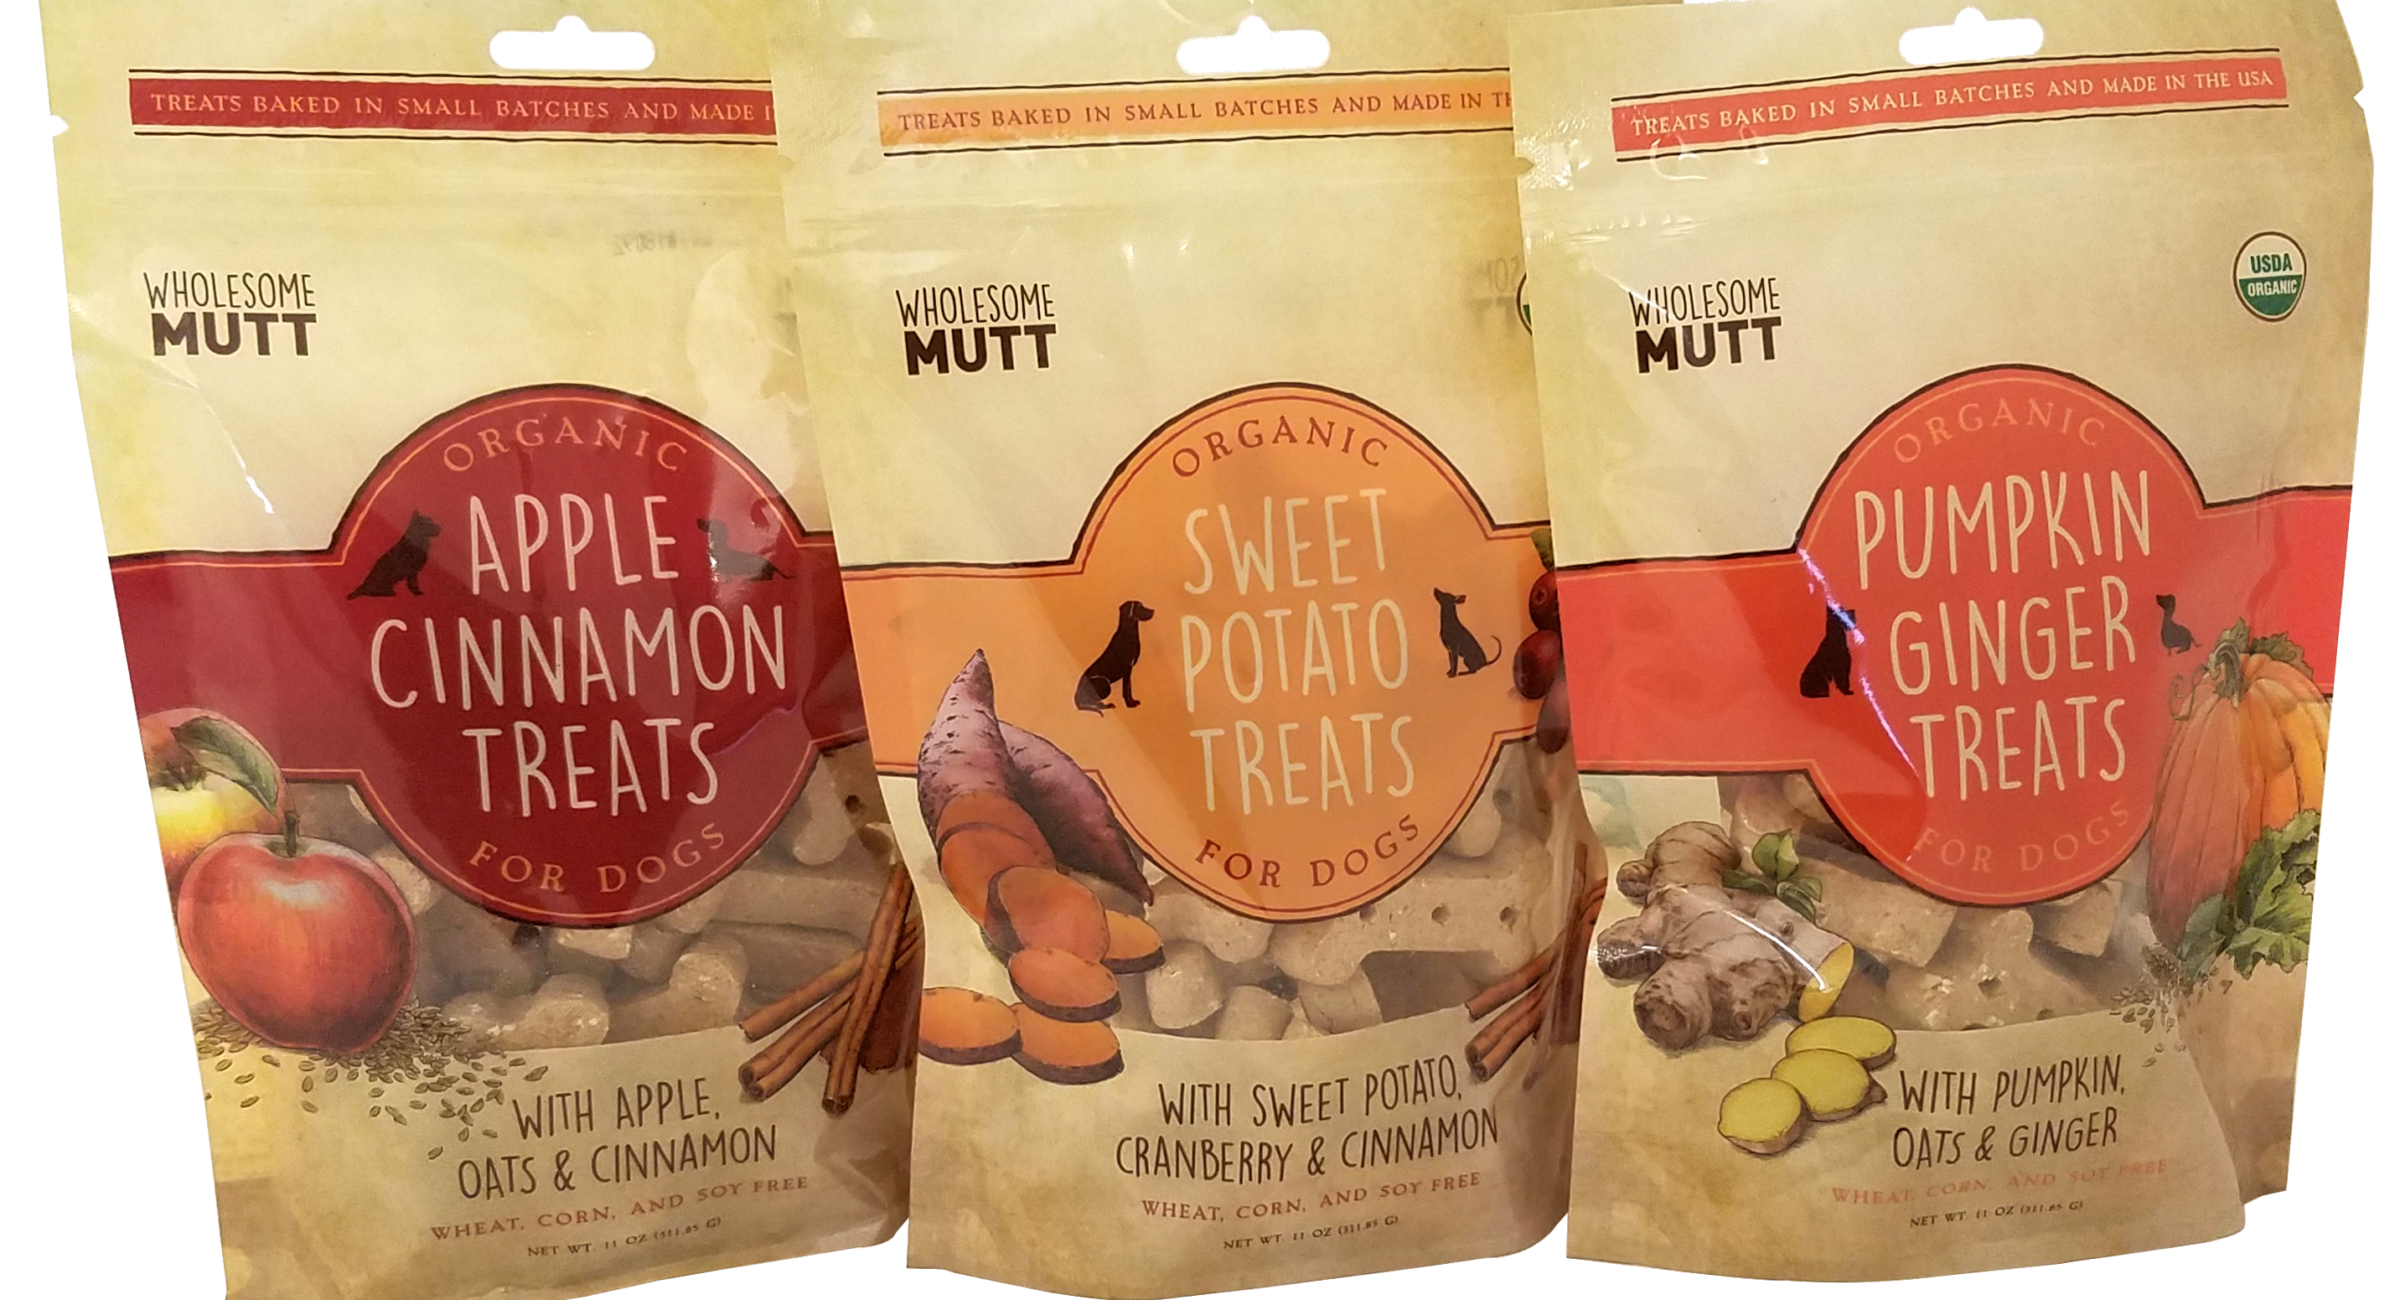 Wholesome Mutt Organic Dog Treats (Apple Cinnamon, Sweet Potato, and Pumpkin Ginger)